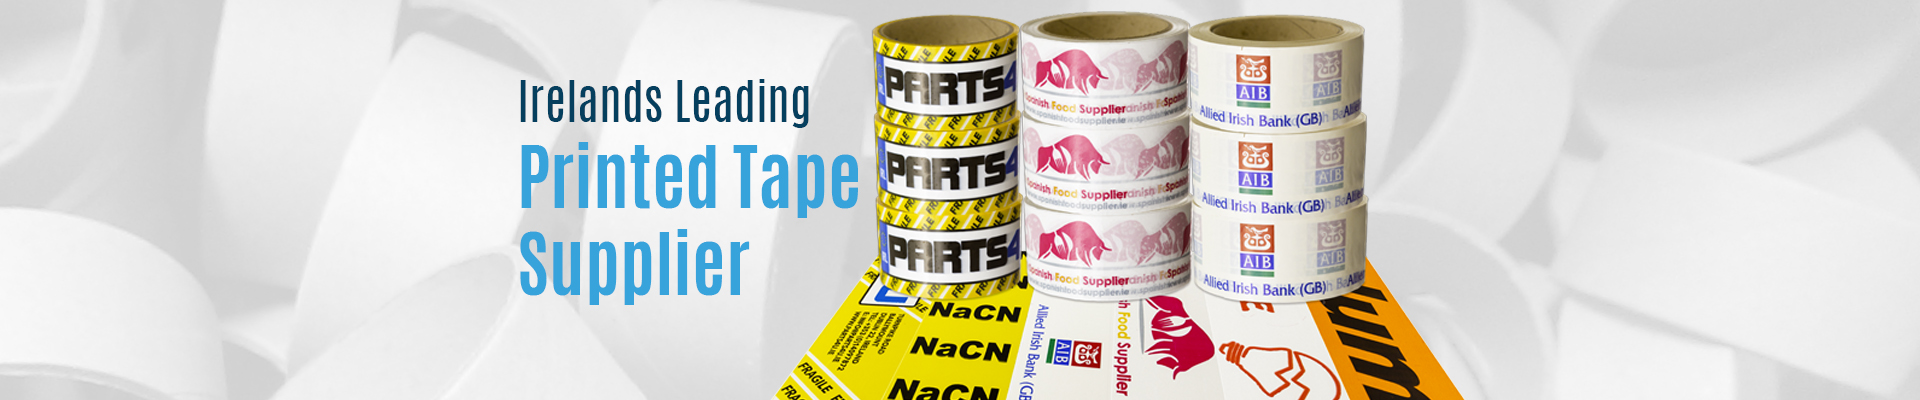 Custom Printed tape, Ireland's Leading Printed Tape Supplier